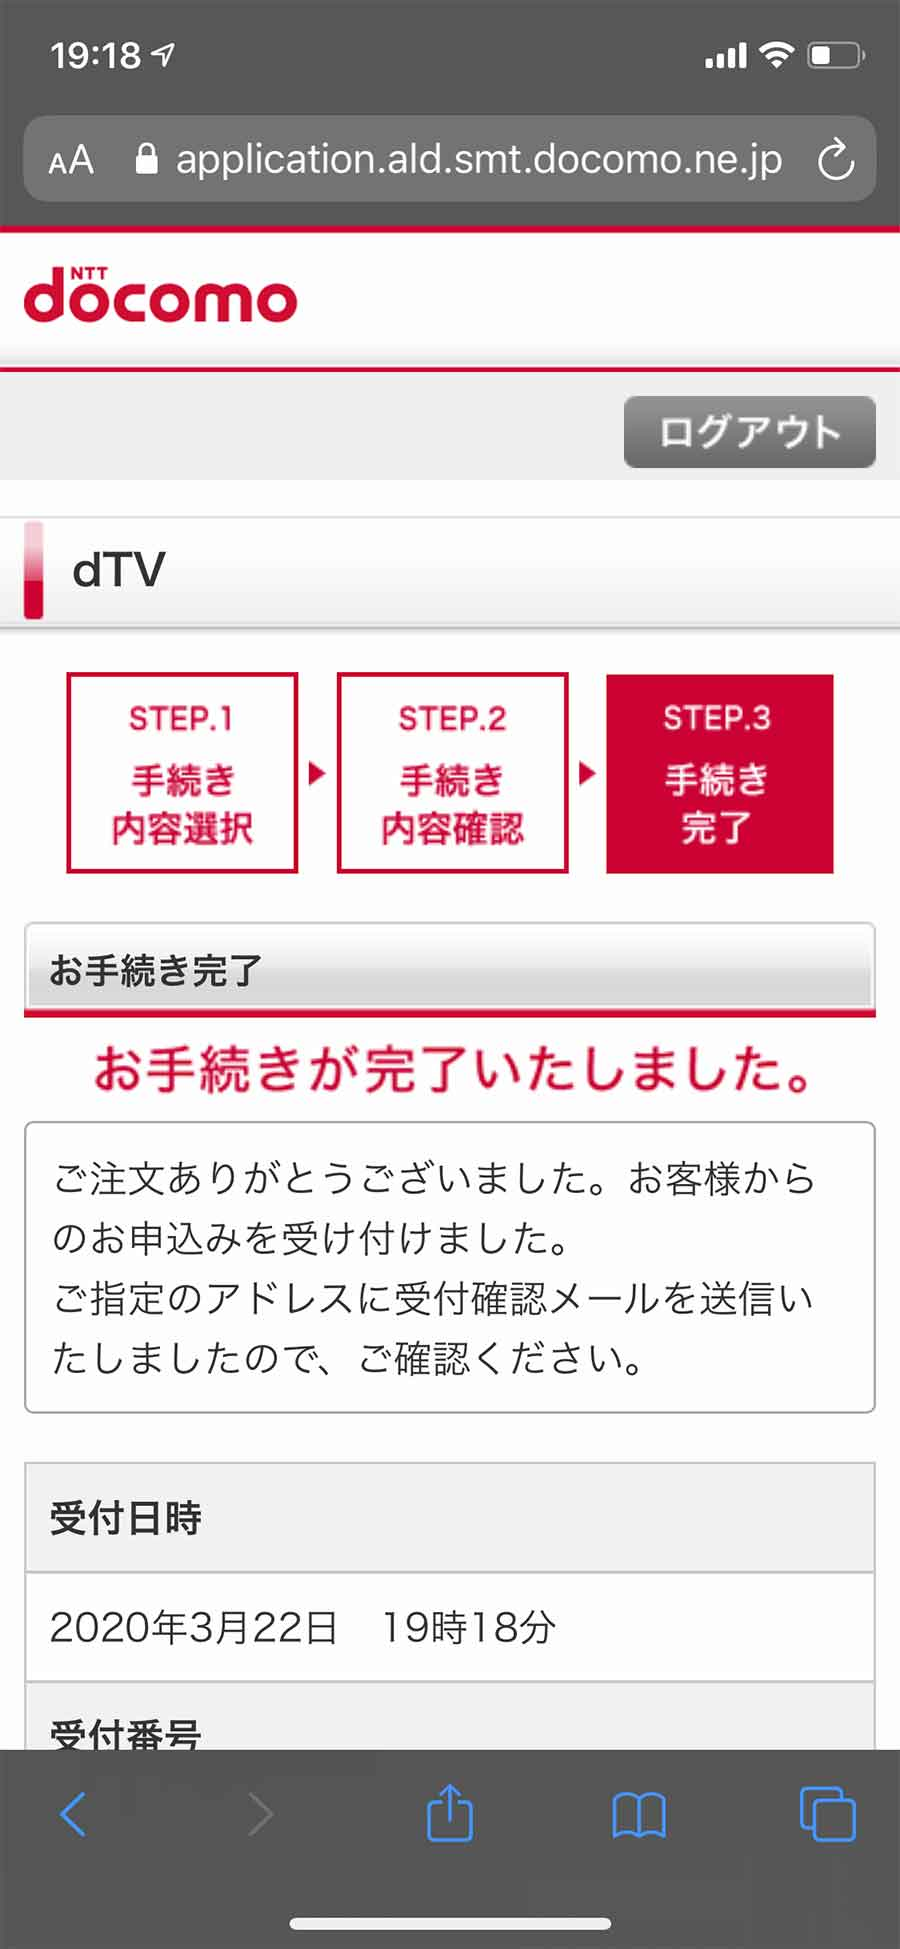 dTVの解約完了